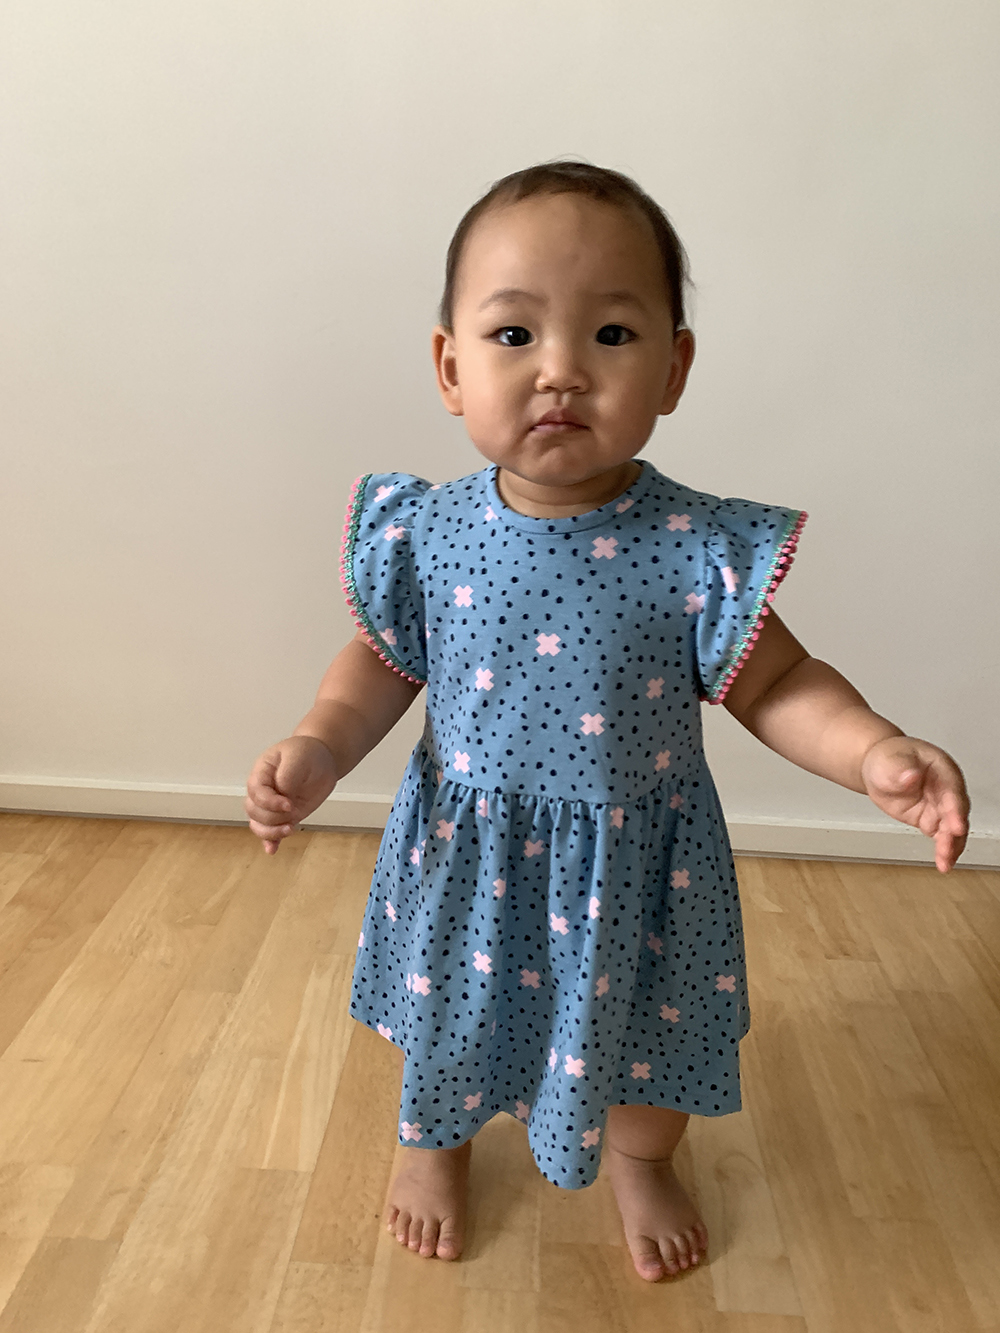 crossanddots-dress-kids.jpg